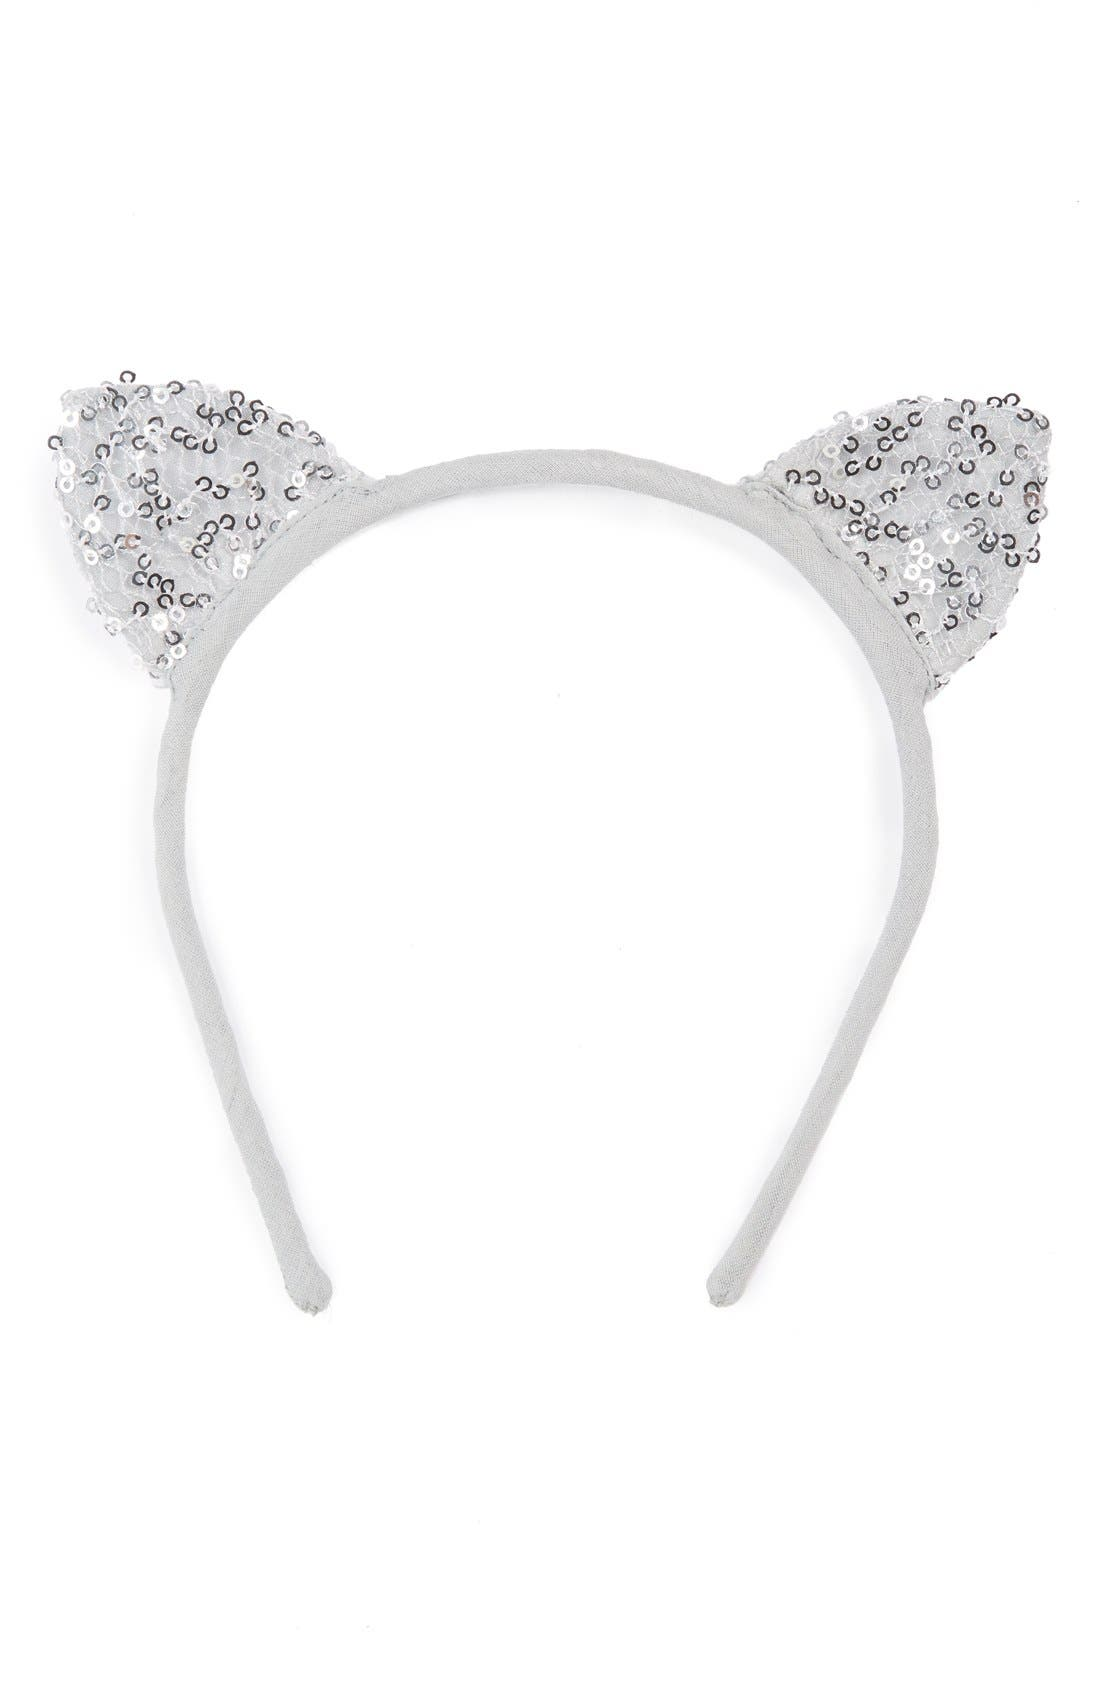 Meow'Sequin Headband,                         Main,                         color,